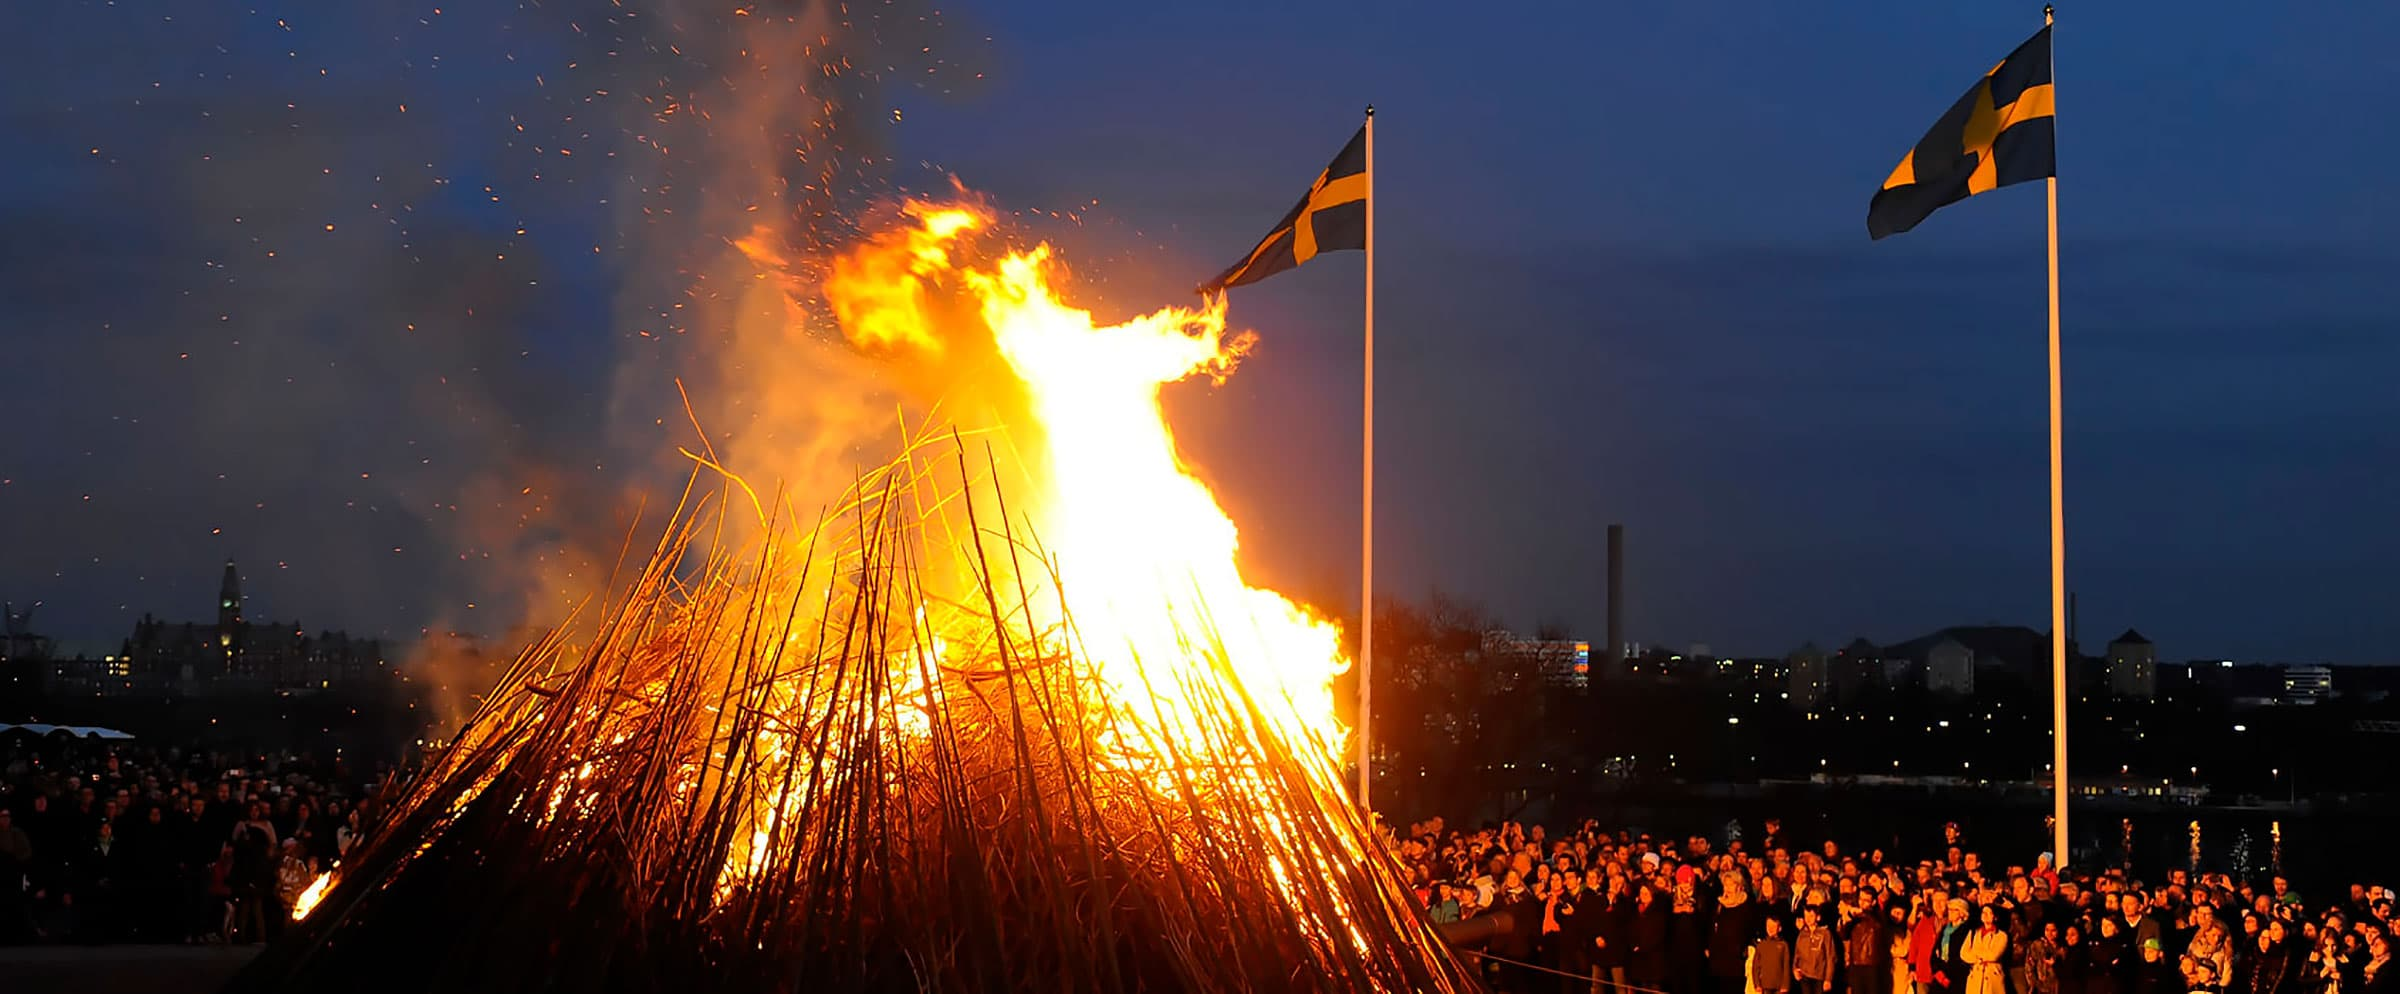 Where to celebrate Walpurgis night in Stockholm